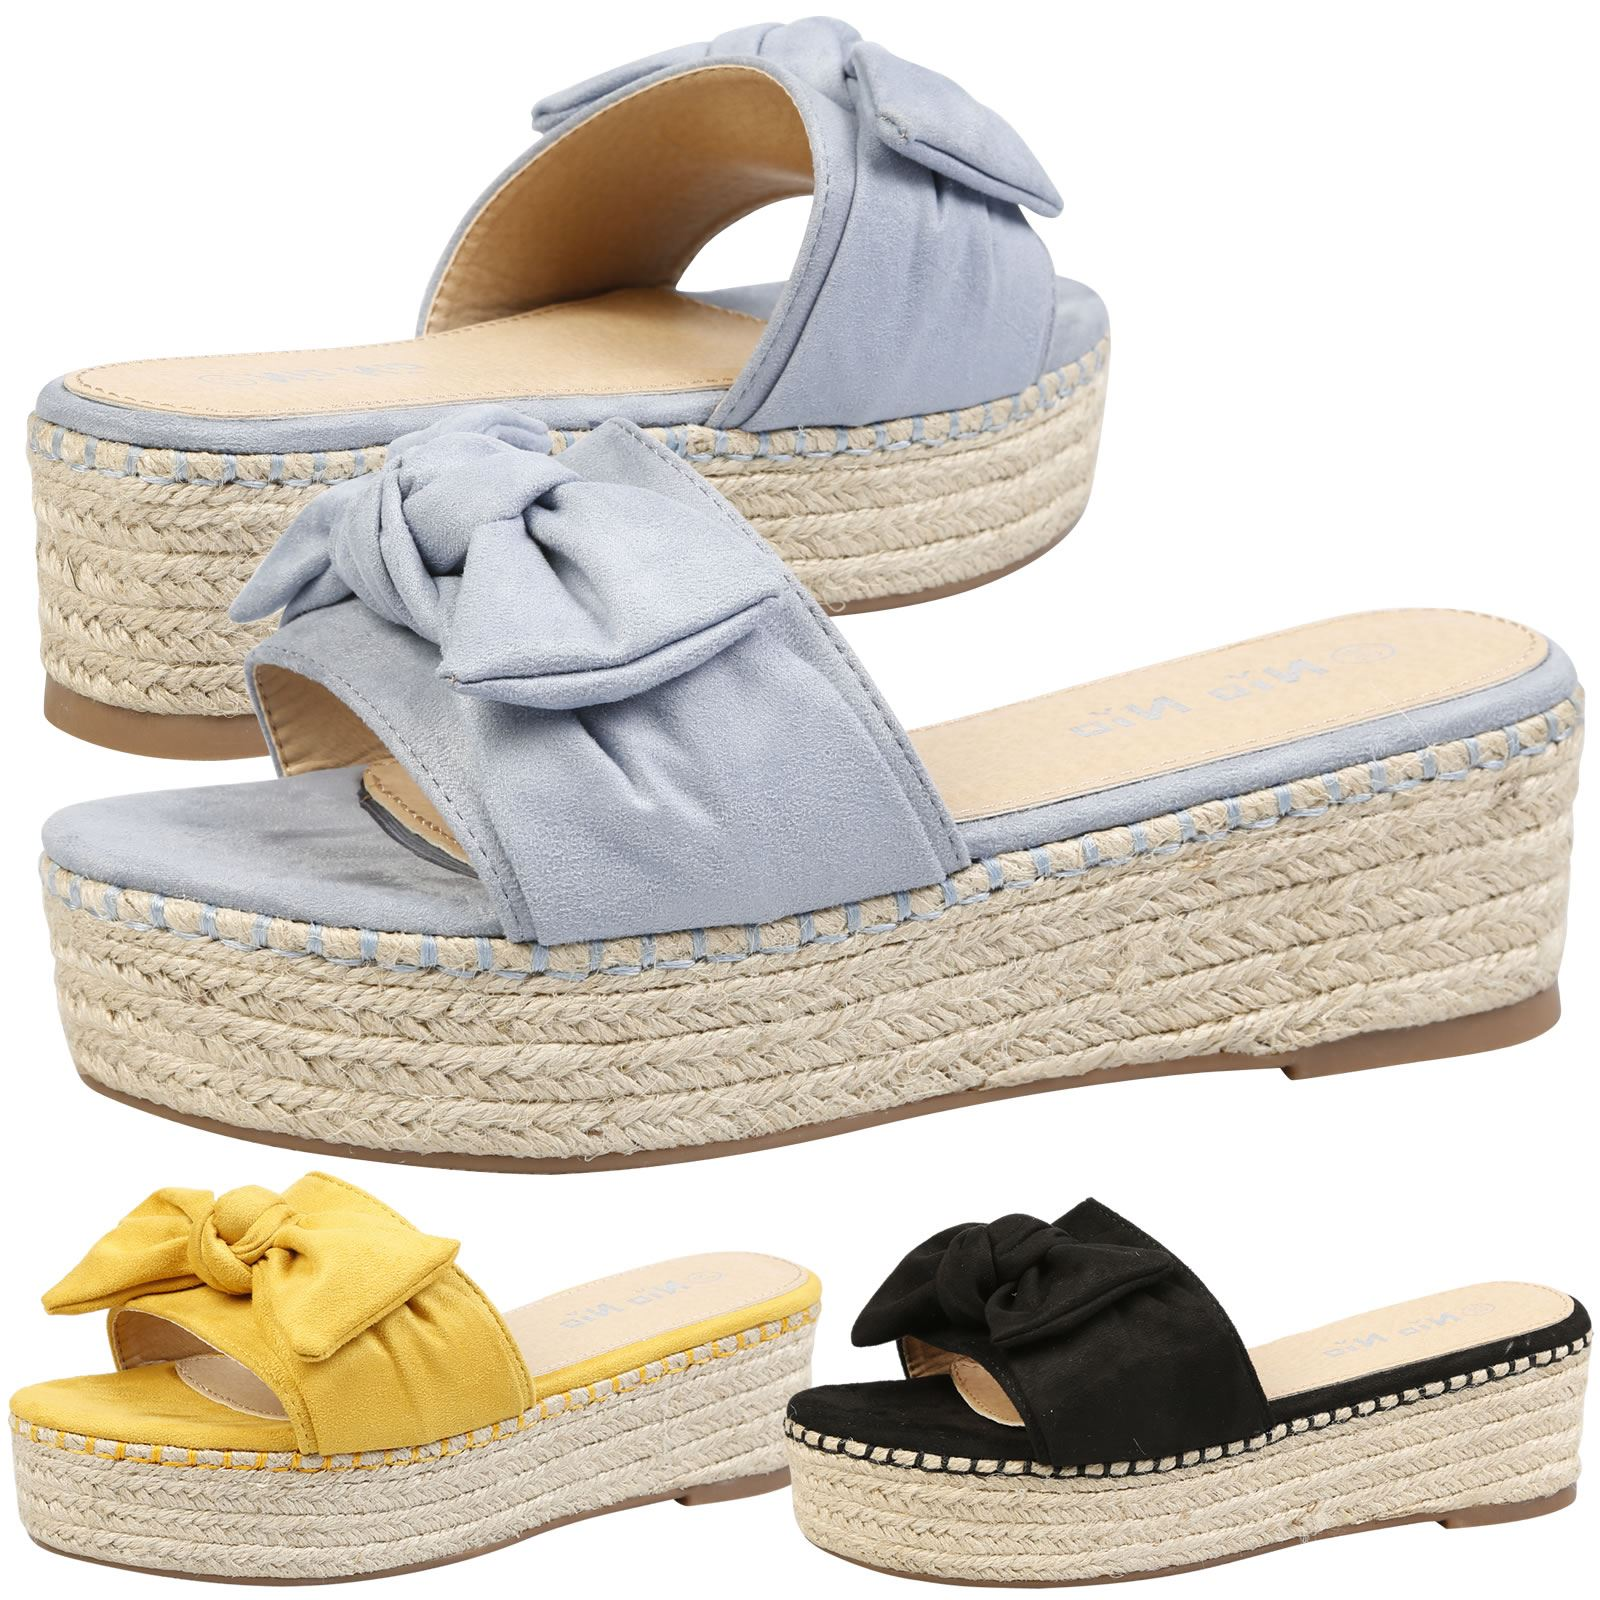 WOMENS SHOES LADIES SANDALS SLIDERS MULES WEDGES PLATFORM BOW ESPADRILLES SUMMER